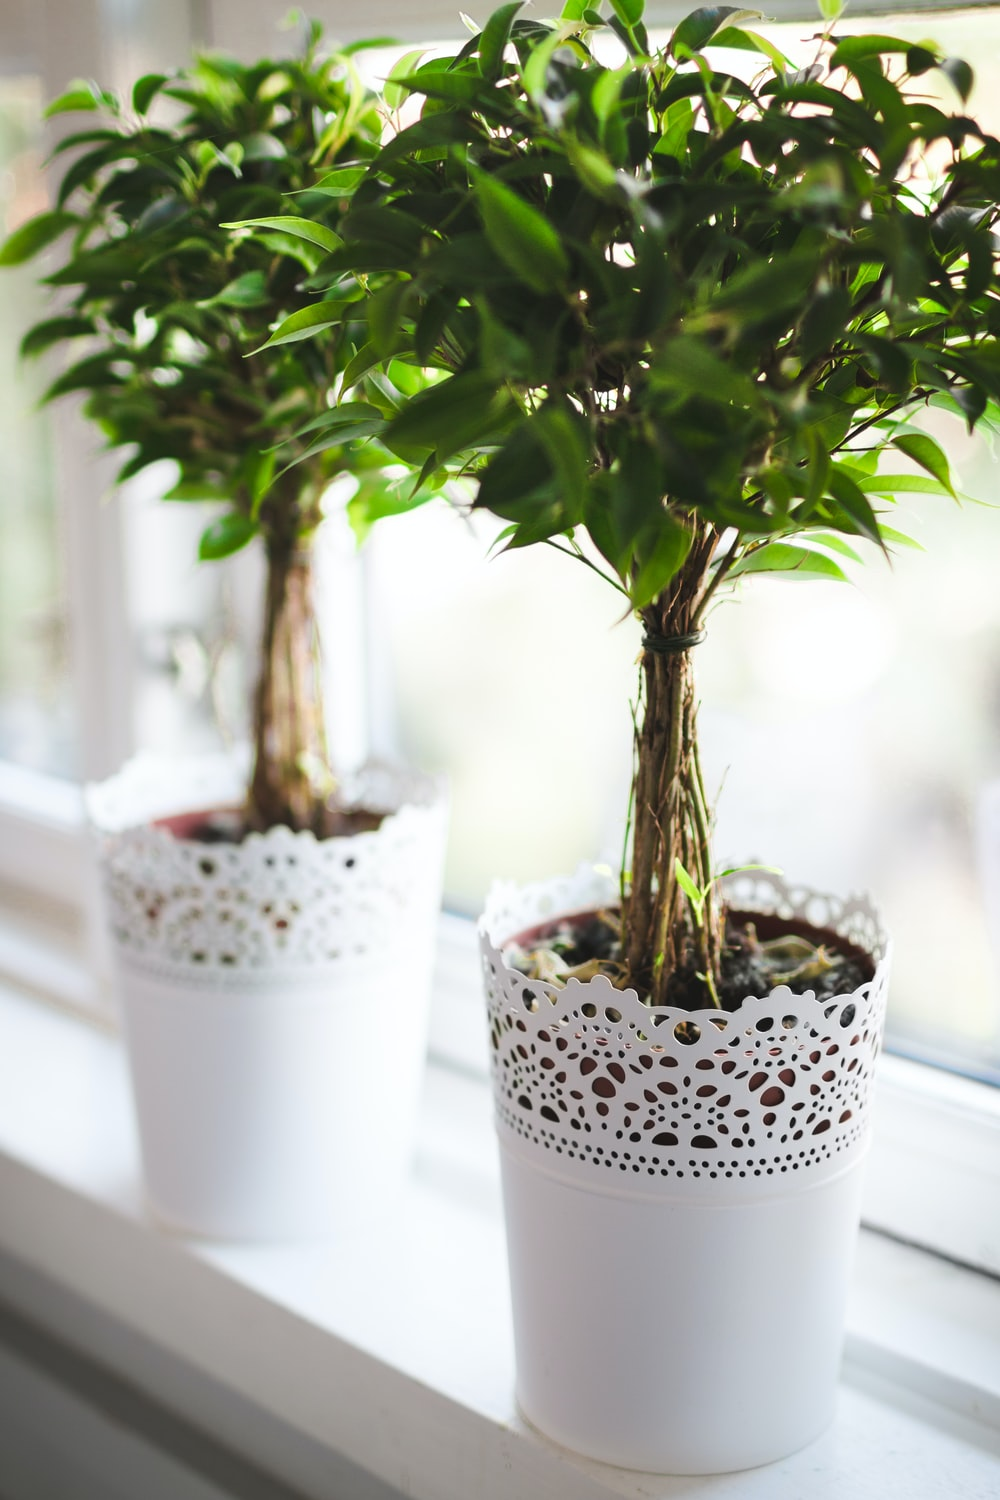 potted green plant near window